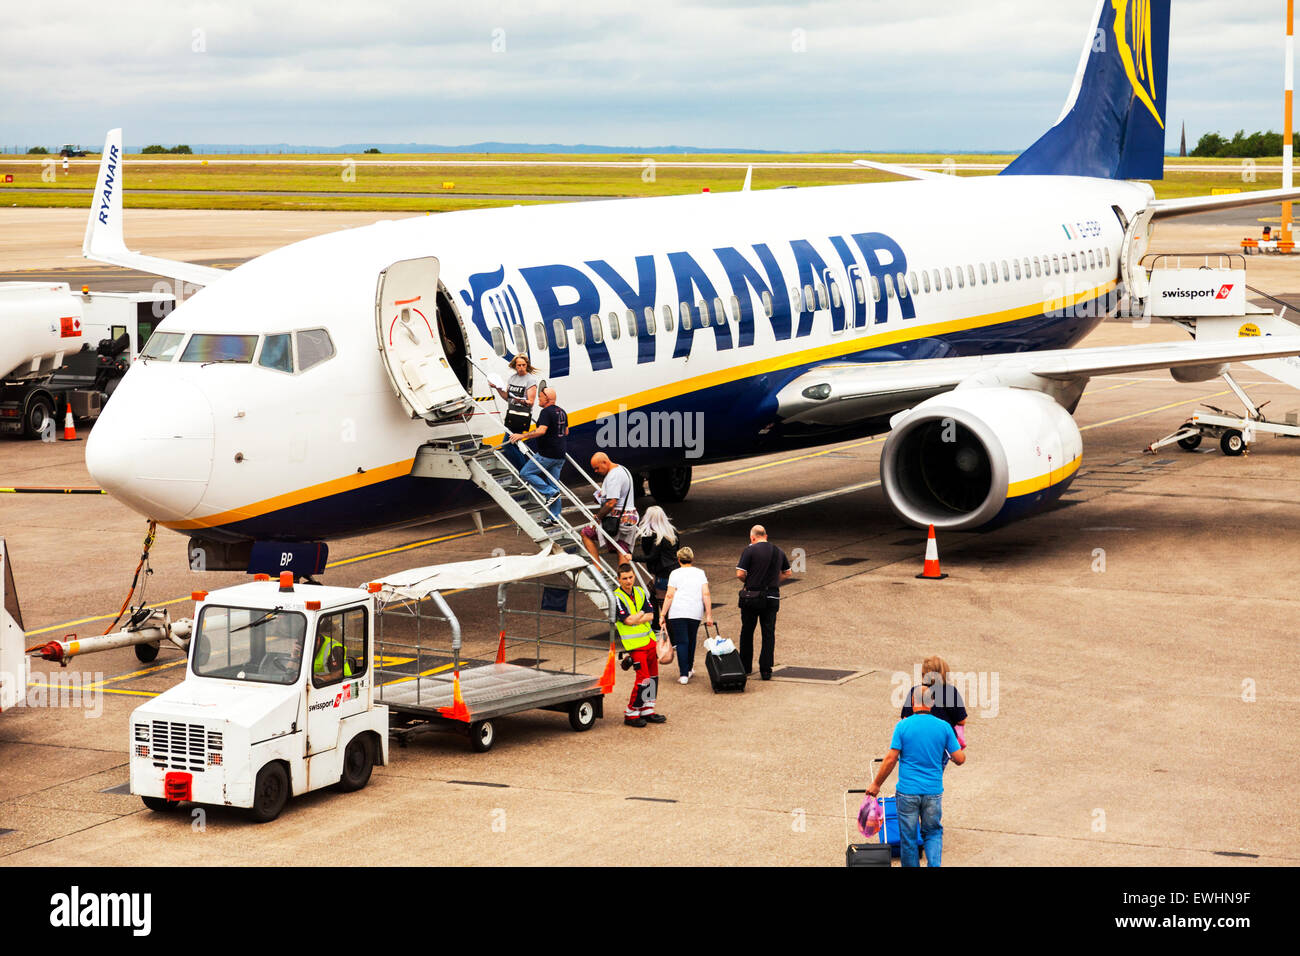 Ryanair plane airlines airline passengers boarding steps East Midlands airport name sign resorts plane aircraft - Stock Image